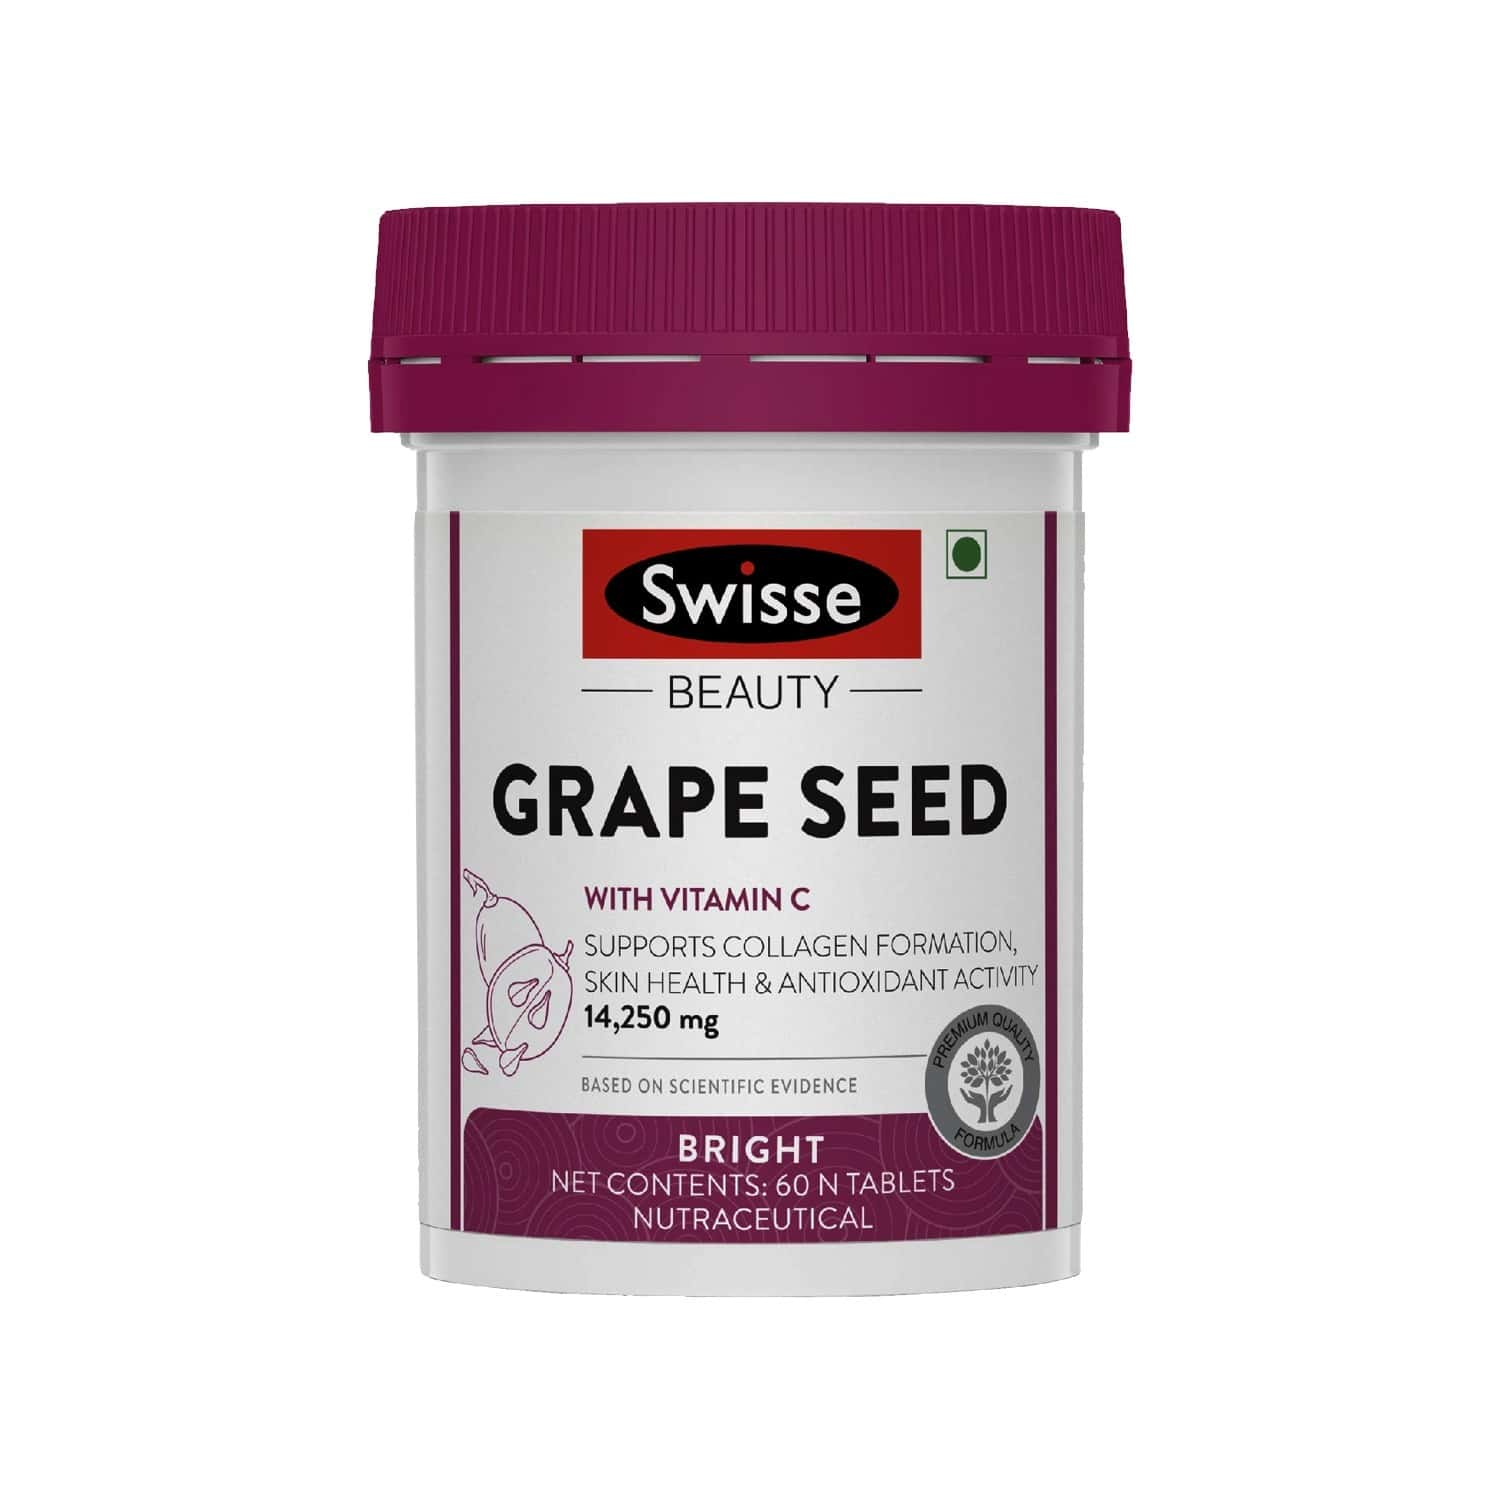 Swisse Ultiboost Grape Seed Supplement With Vitamin C For Healthy Skin - 60 Tablets